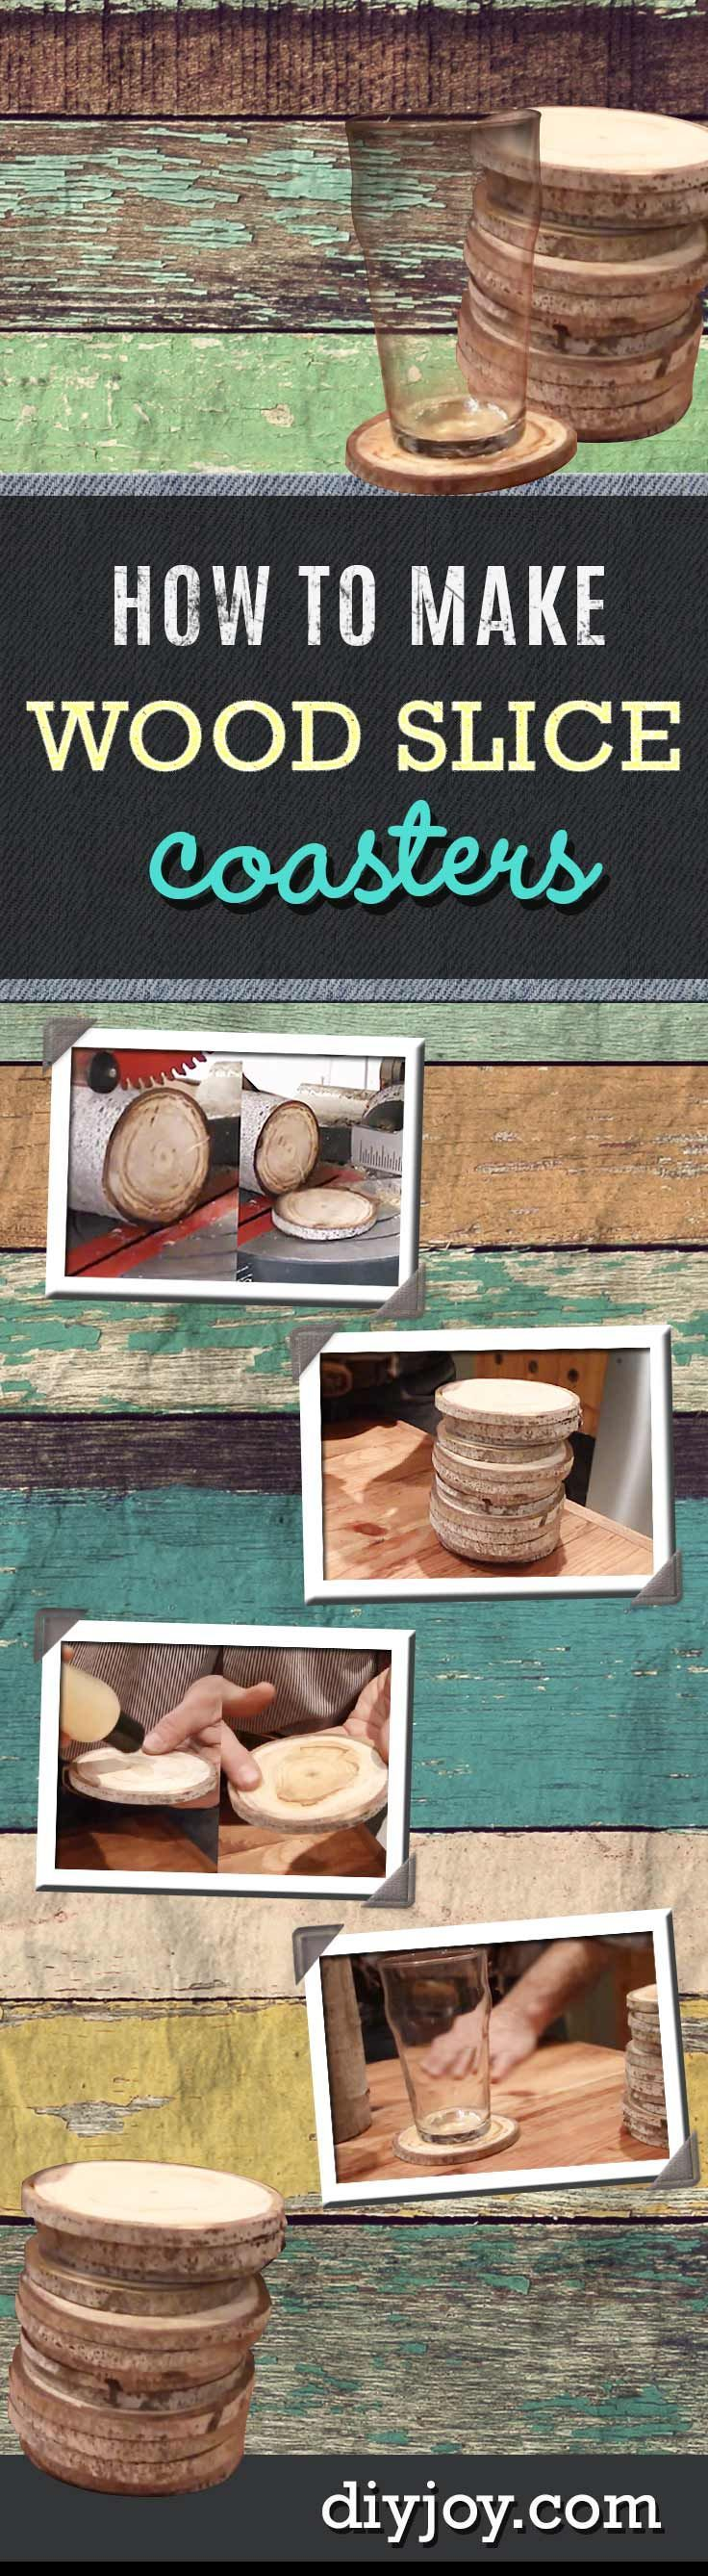 Easy Rustic DIY Projects for the Home - Wood Slice Coasters http://diyjoy.com/diy-home-decor-how-to-make-coasters